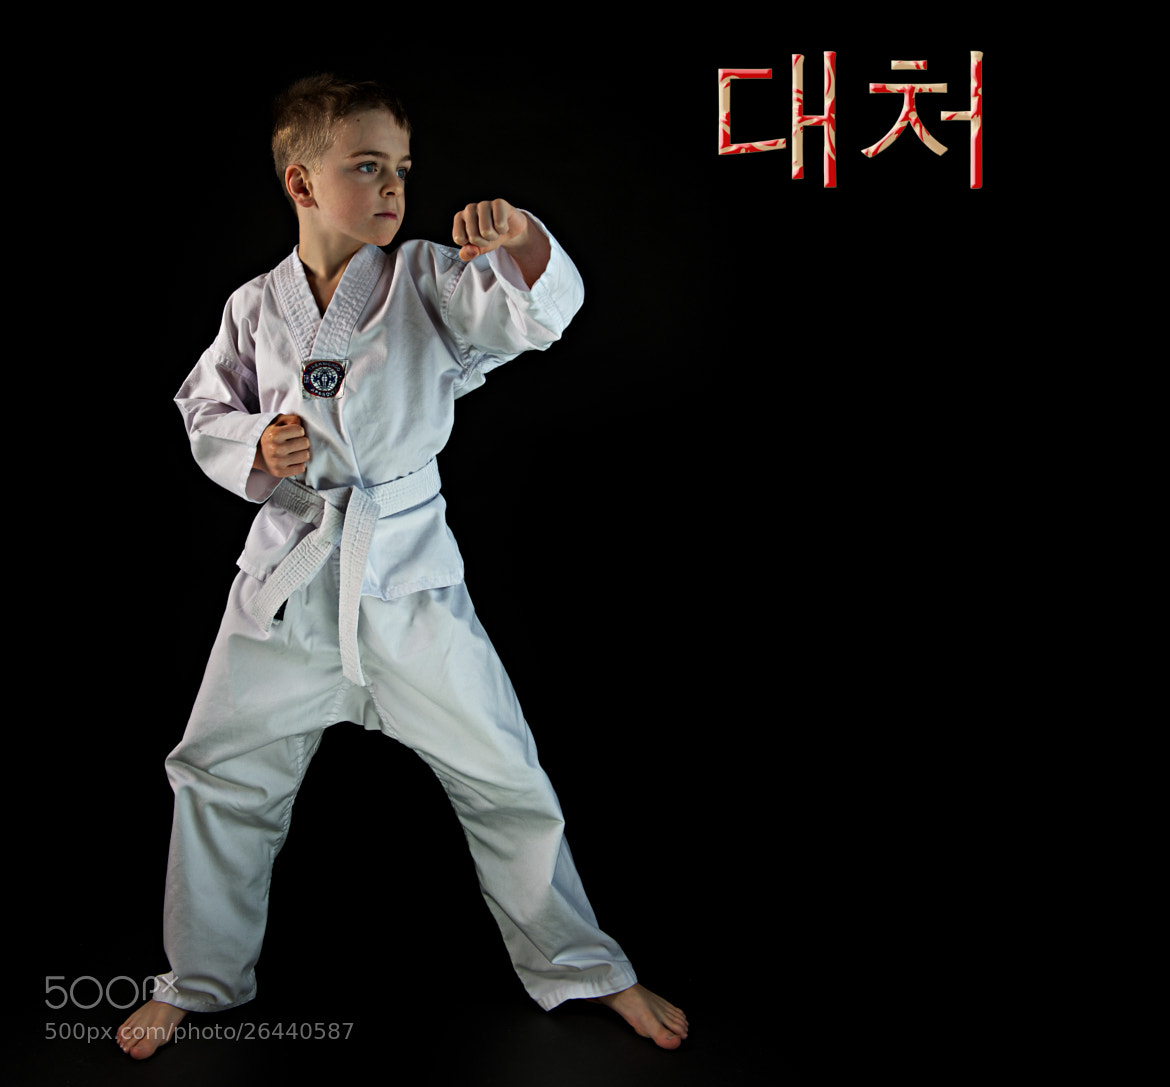 Photograph Taekwondo 2 by Ghislain Leduc on 500px